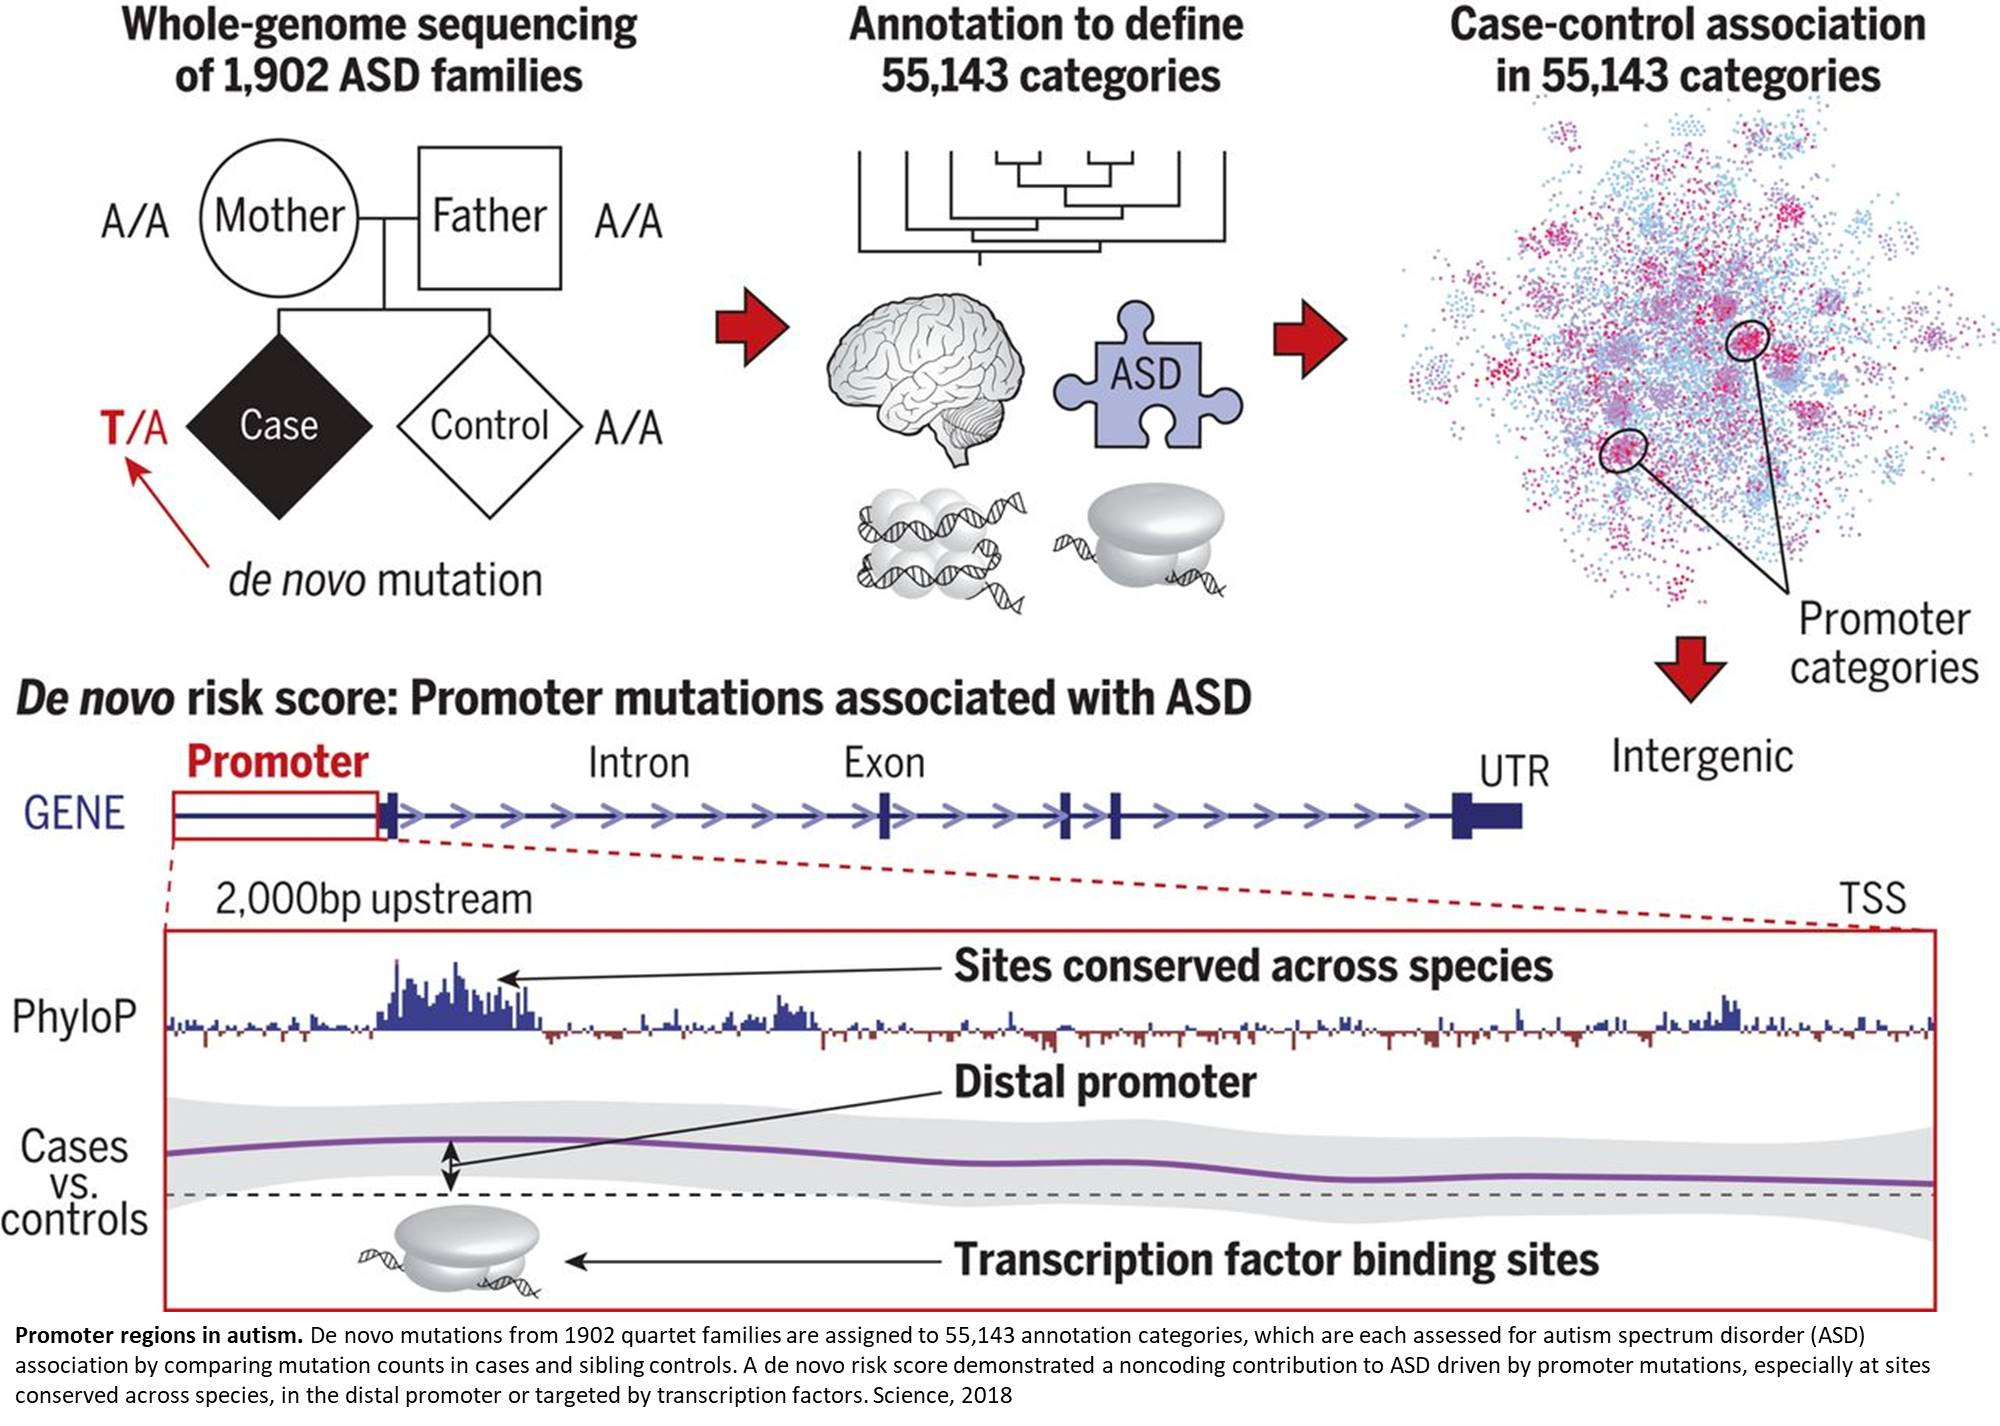 Mutations in 'promoter regions' of the genome implicated in autism